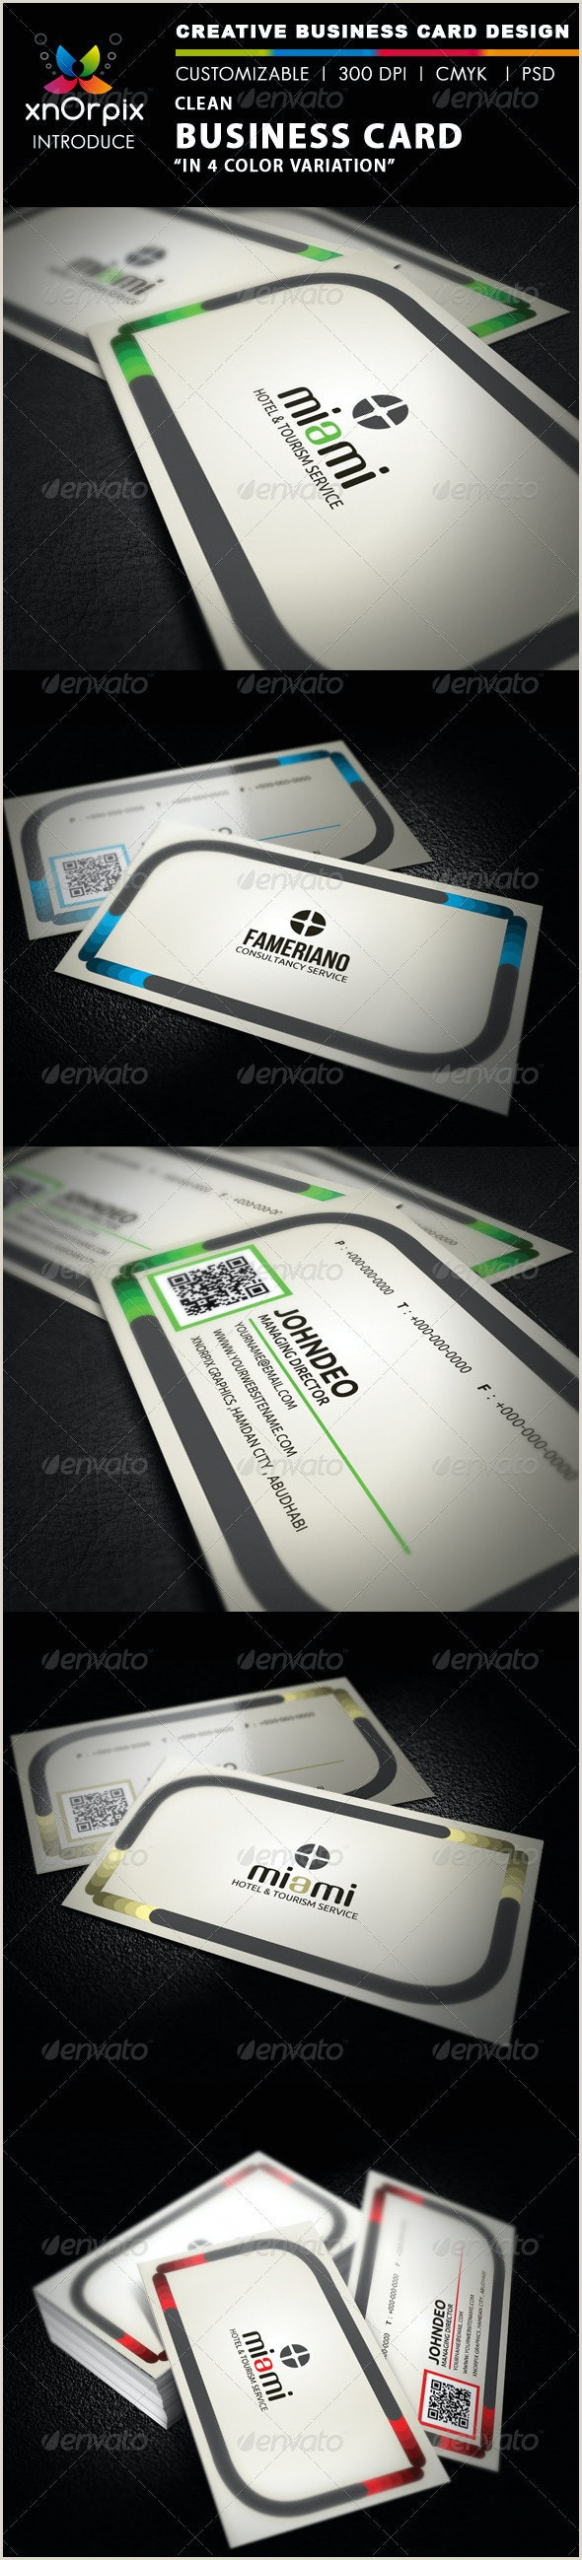 Best Business Cards For Lawyers 23 Best Business Card Templates & Designs For February 2019